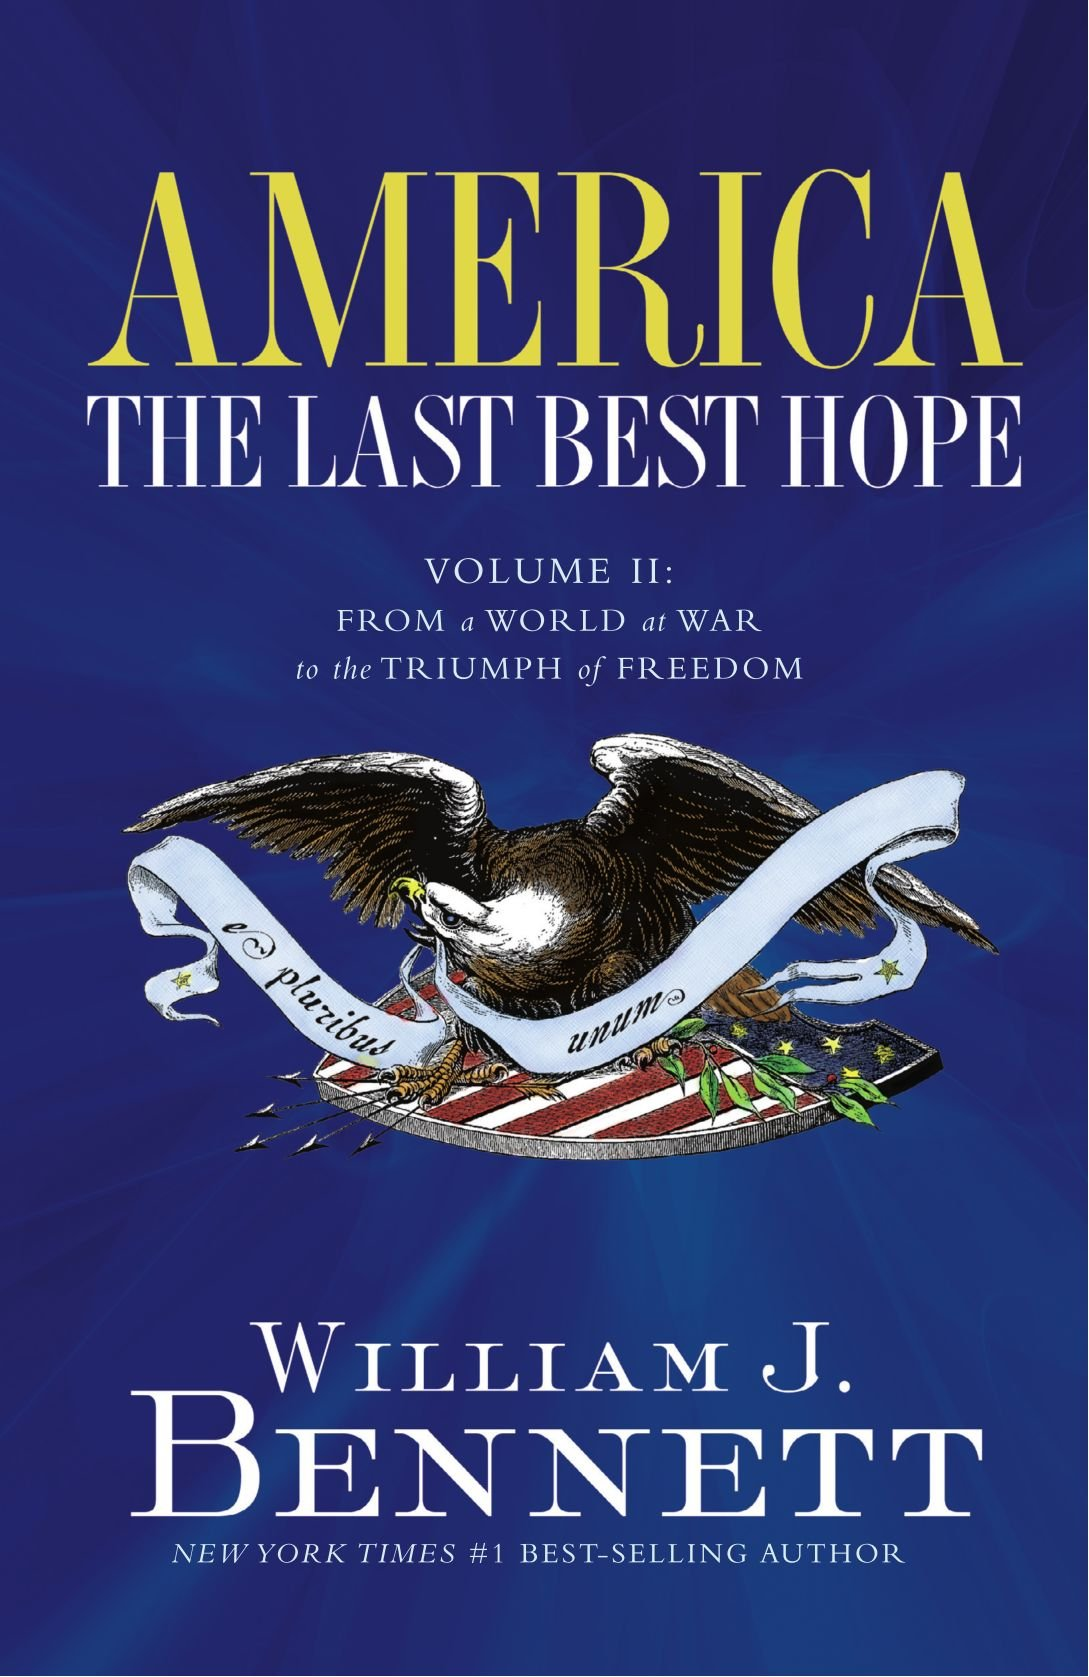 AMERICA: THE LAST BEST HOPE VOL. 2: William Bennett: 9781595550873 ...